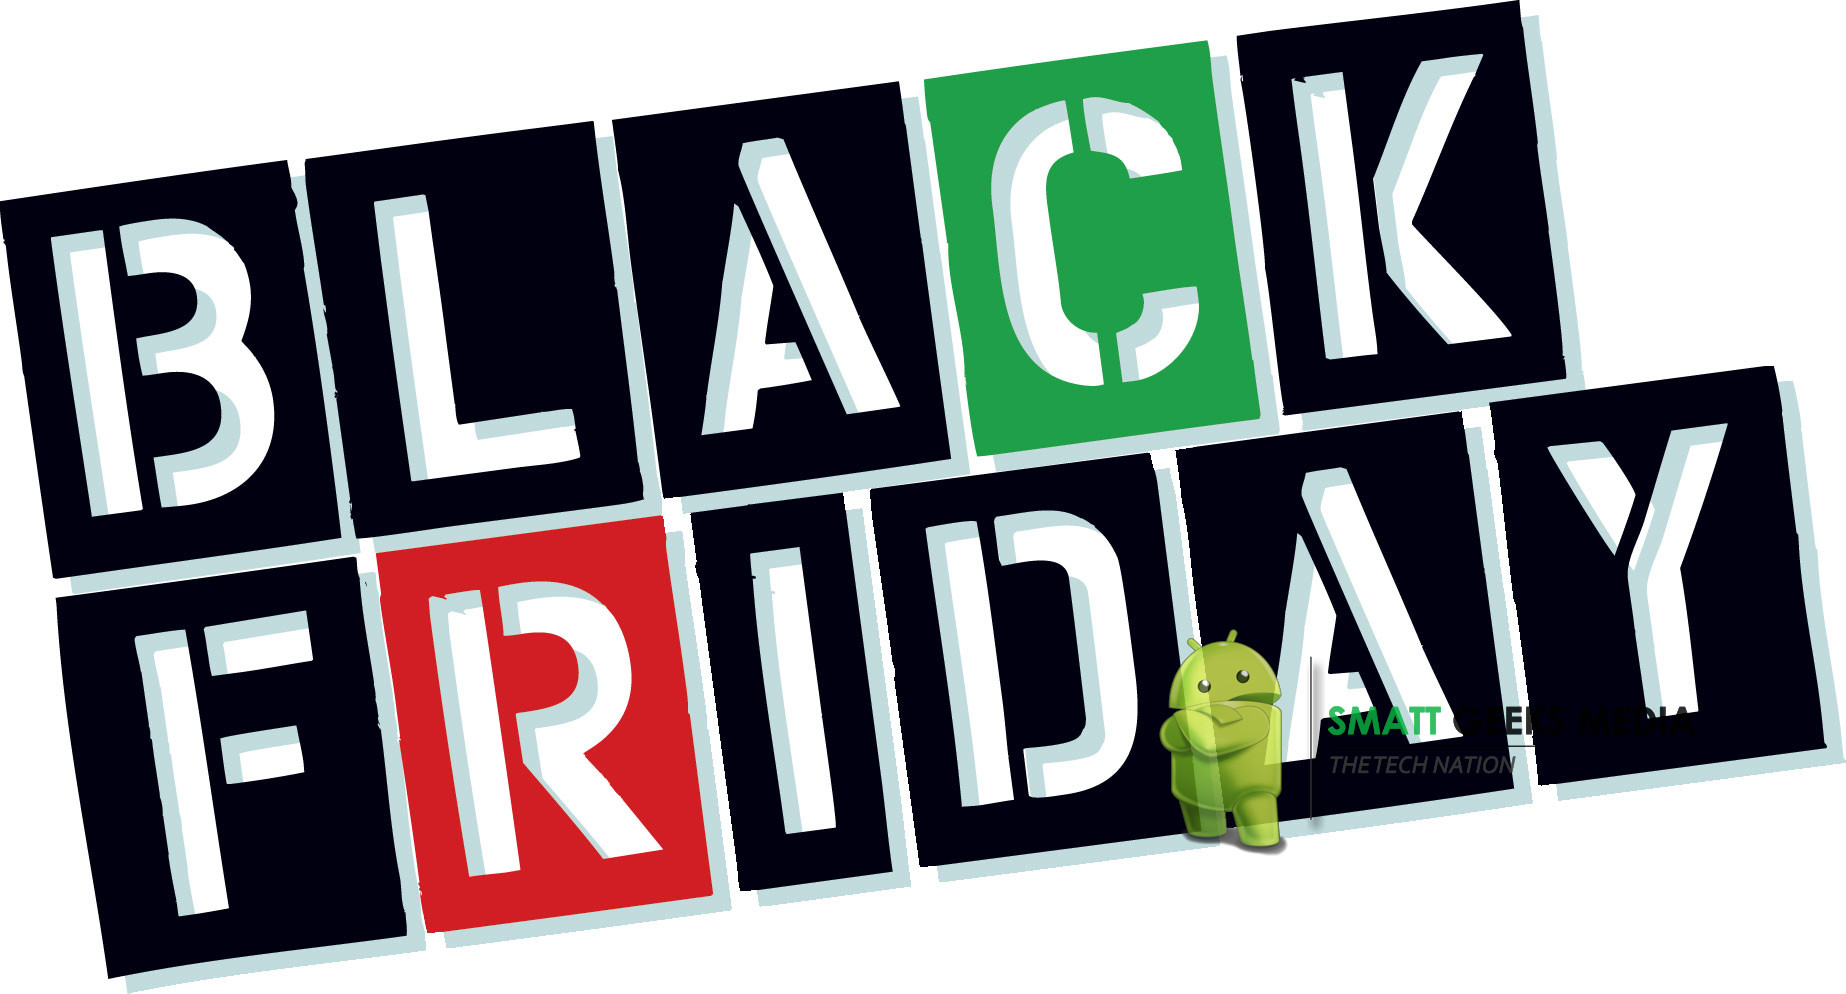 blackfriday - Discussing the dark side of Black Friday